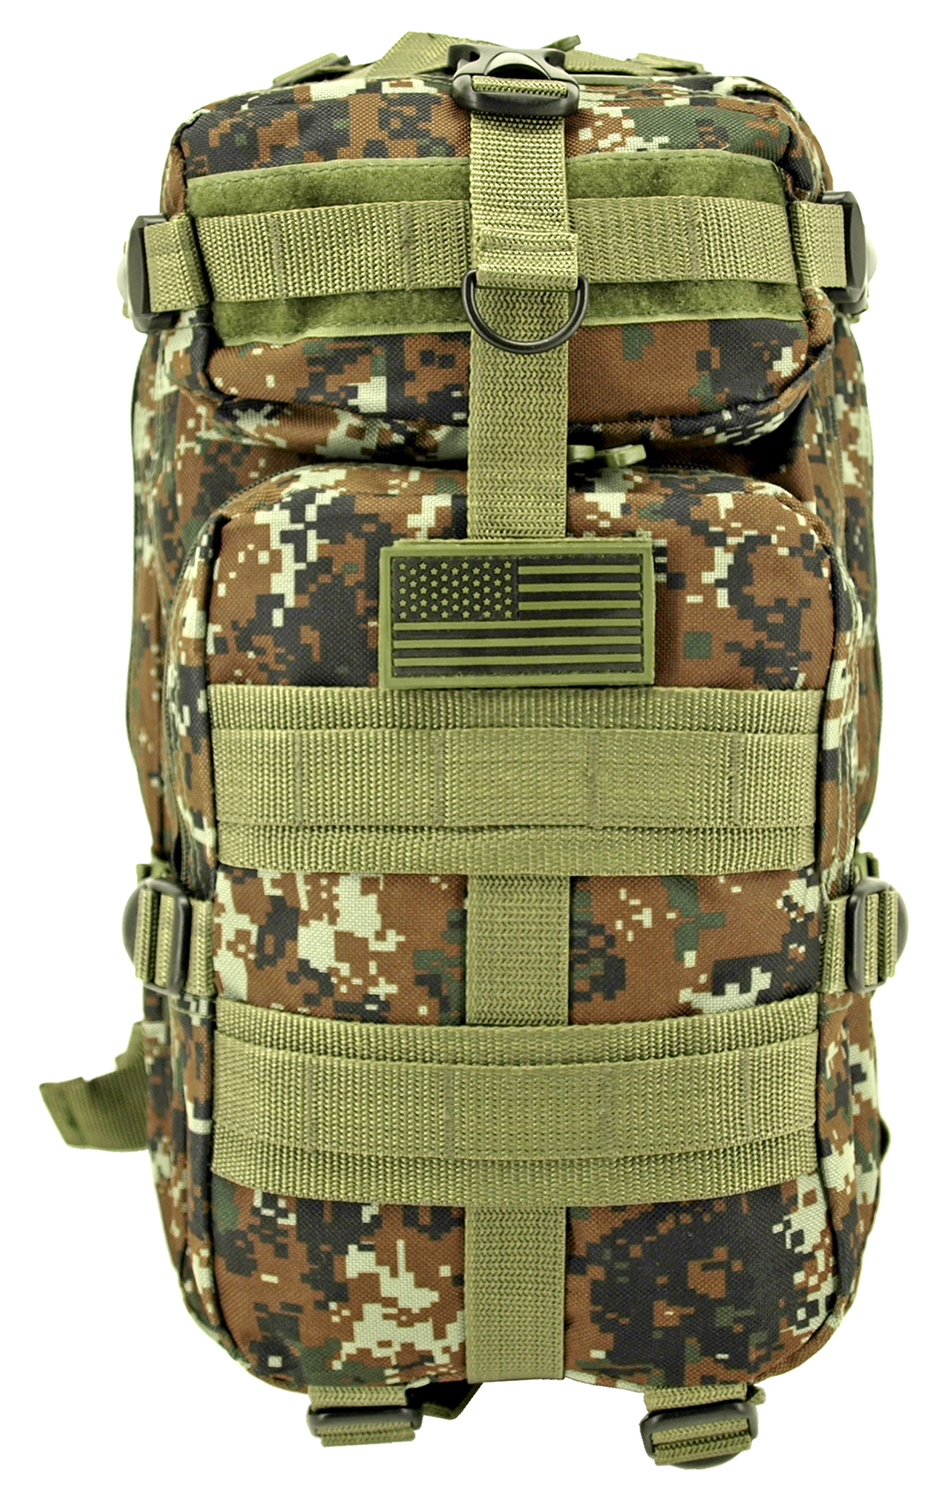 Mission Pack - Green Digital Camo